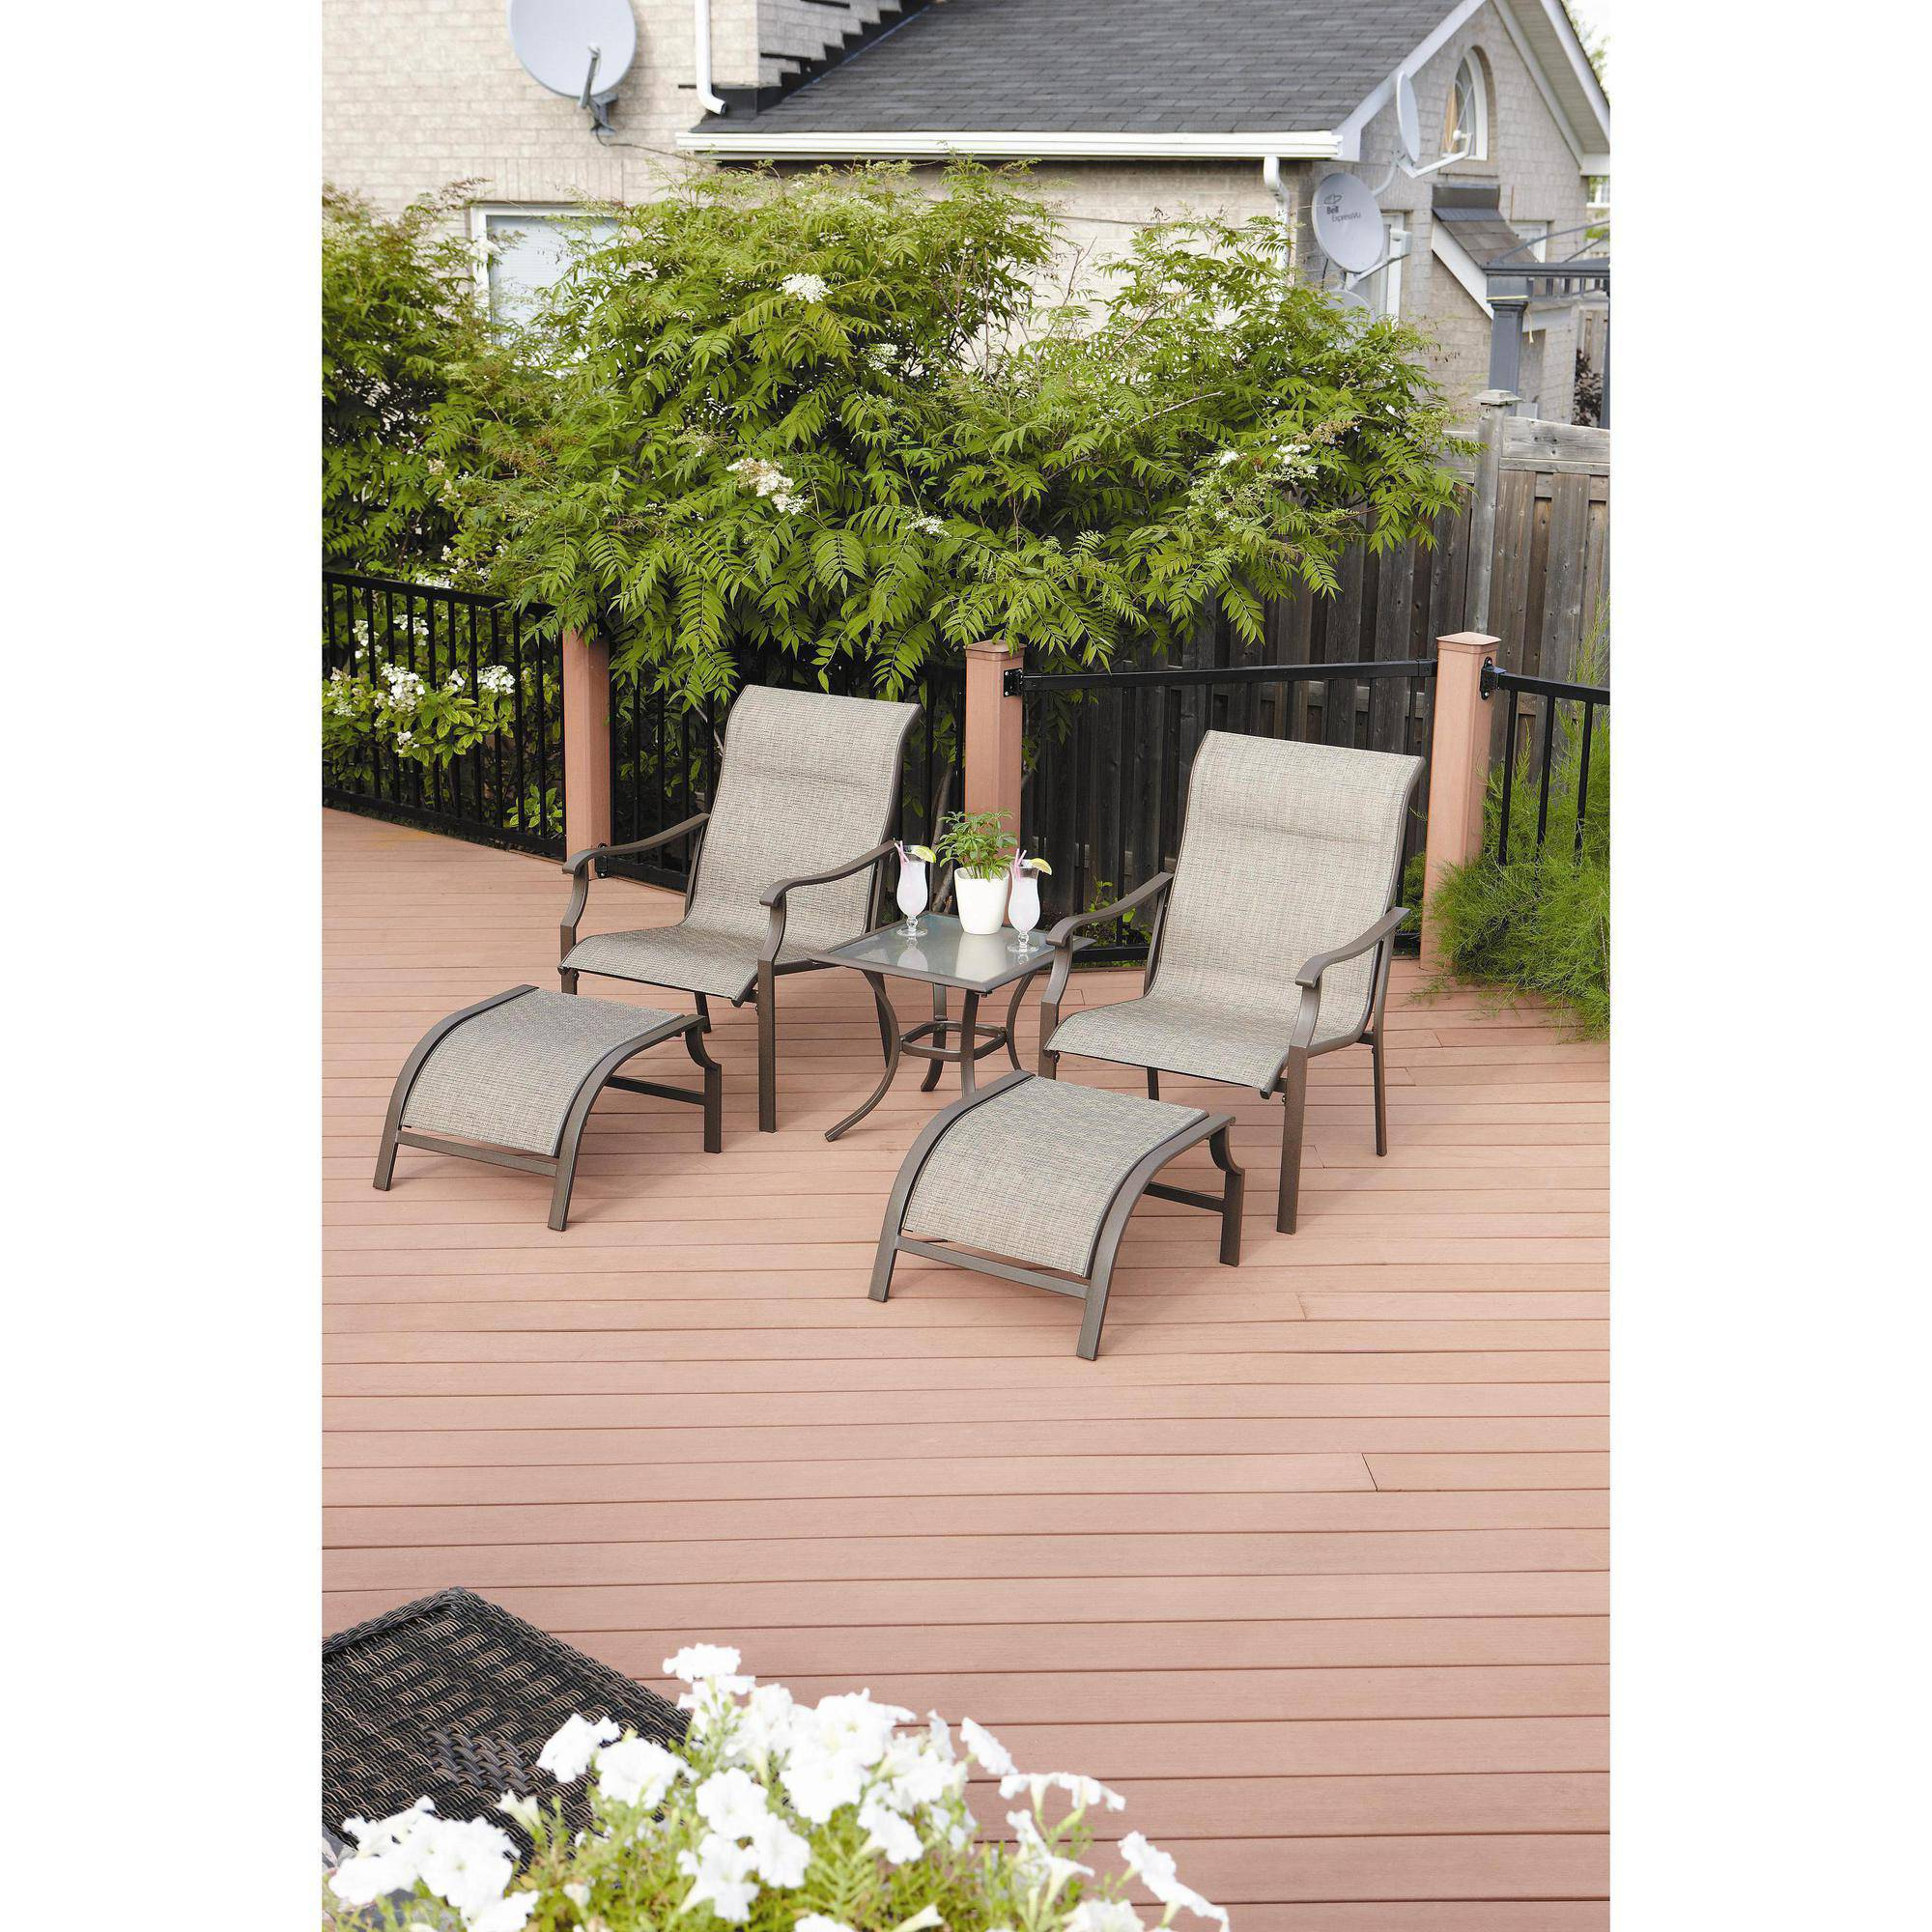 Mainstays York 5-Piece Outdoor Leisure Set, Seats 2